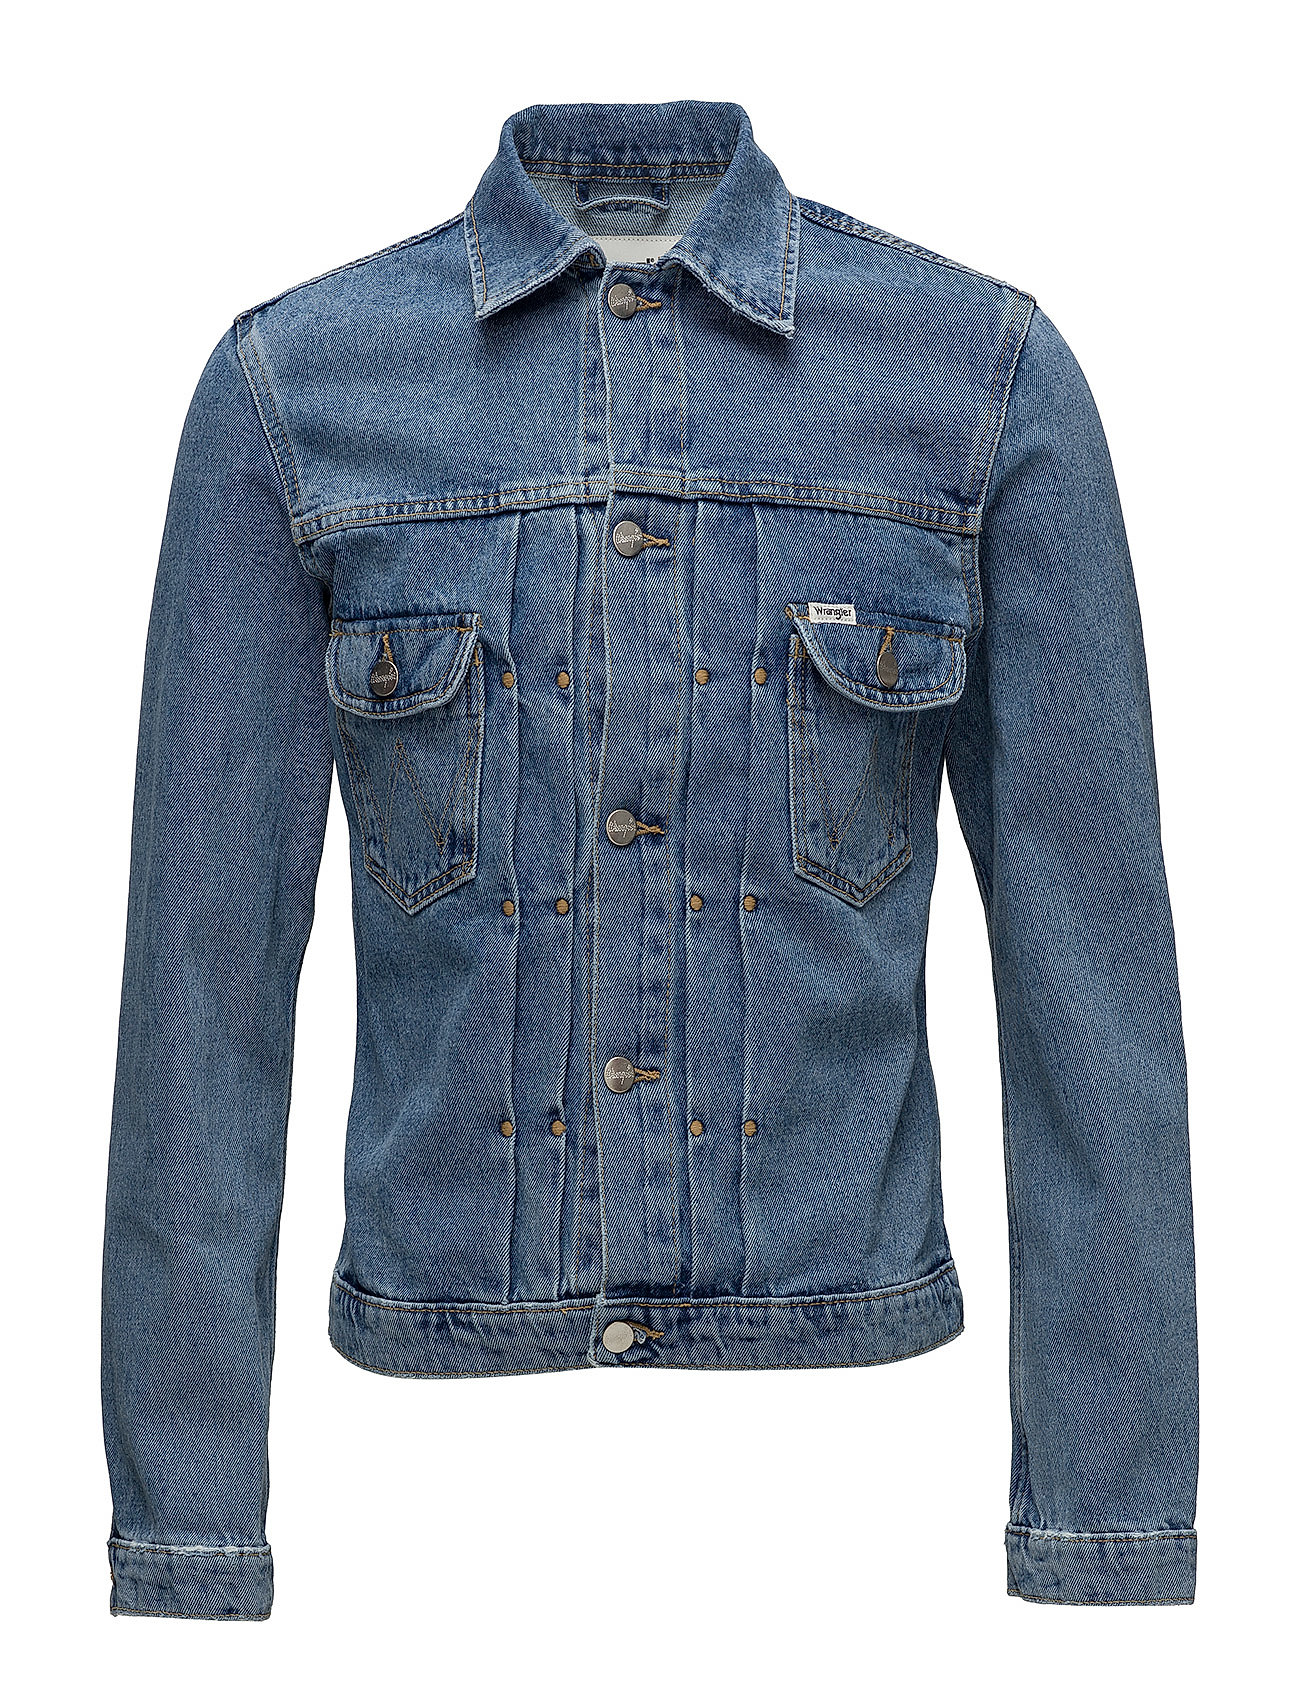 Wrangler RETRO JACKET - KABEL BLUE